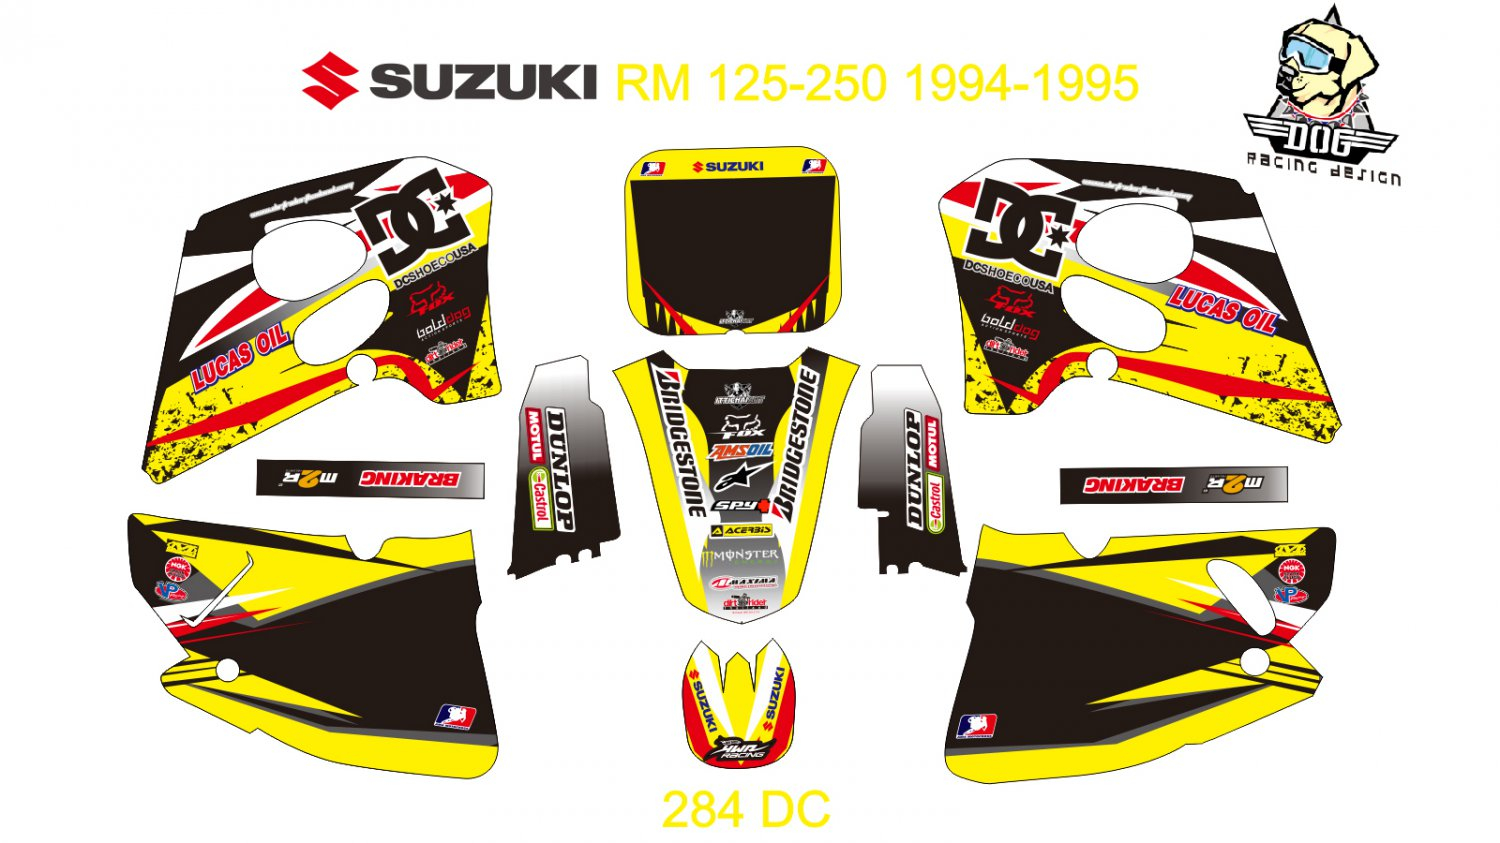 SUZUKI RM 125-250 1994-1995 GRAPHIC DECAL KIT CODE.284